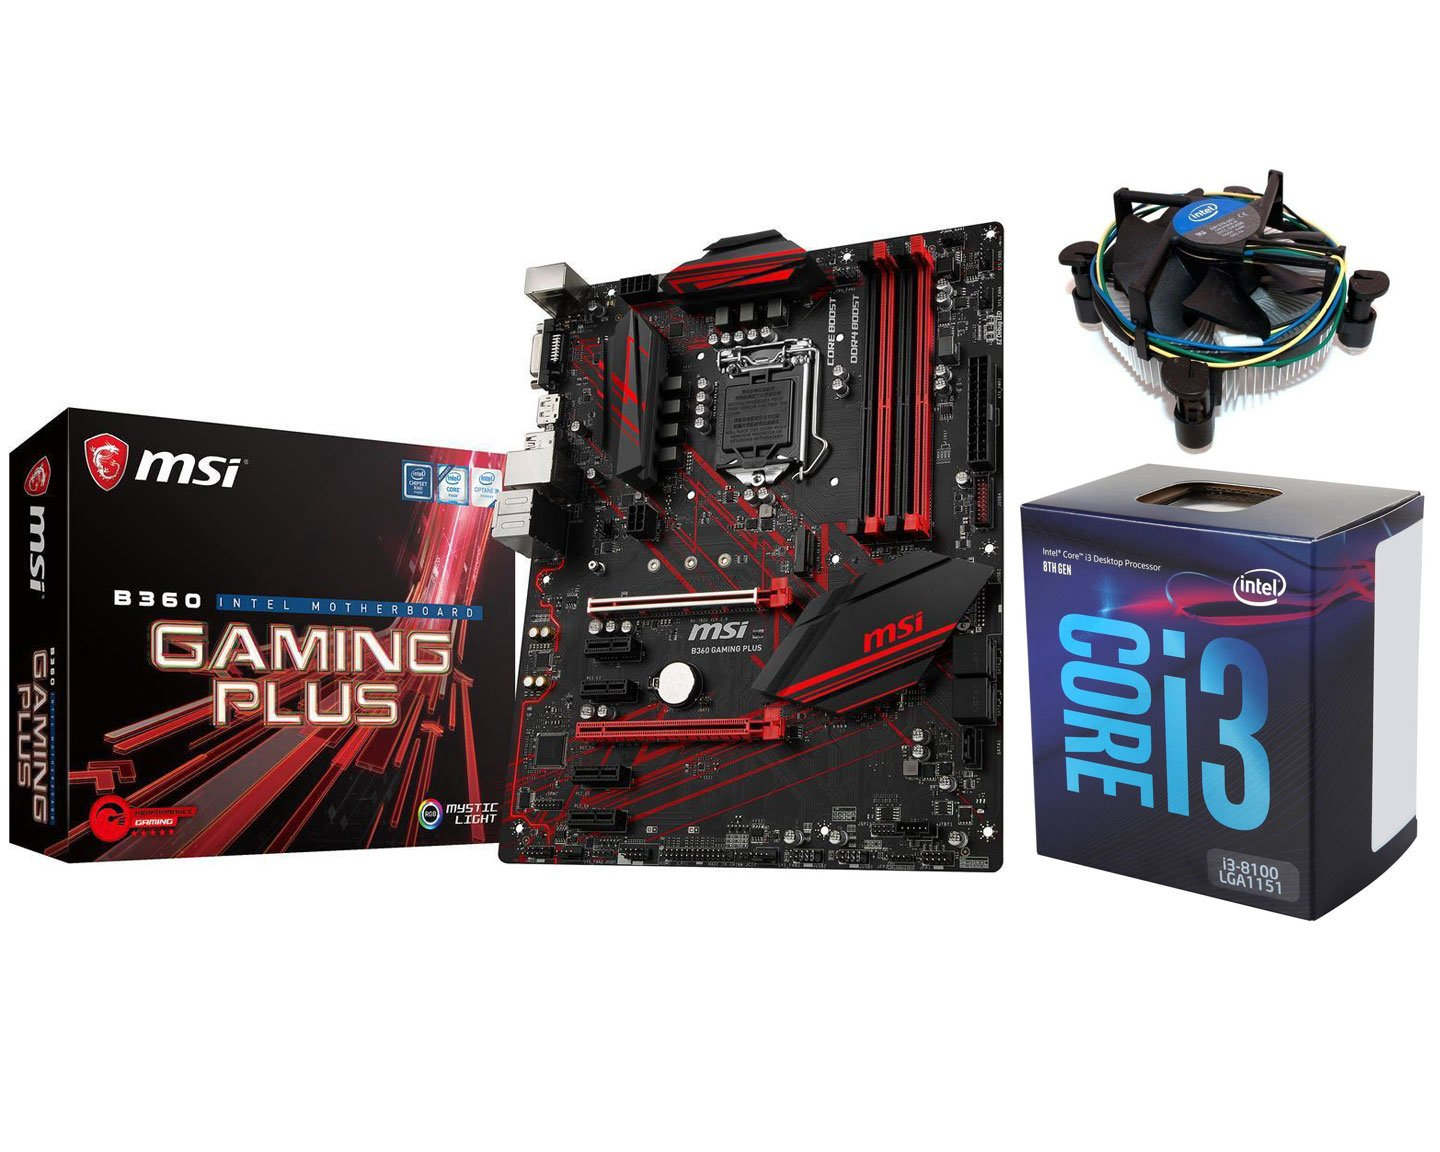 Intel I3 8100 Msi B360 Gaming Cpu Combo 24889 Motherboard Add Review For